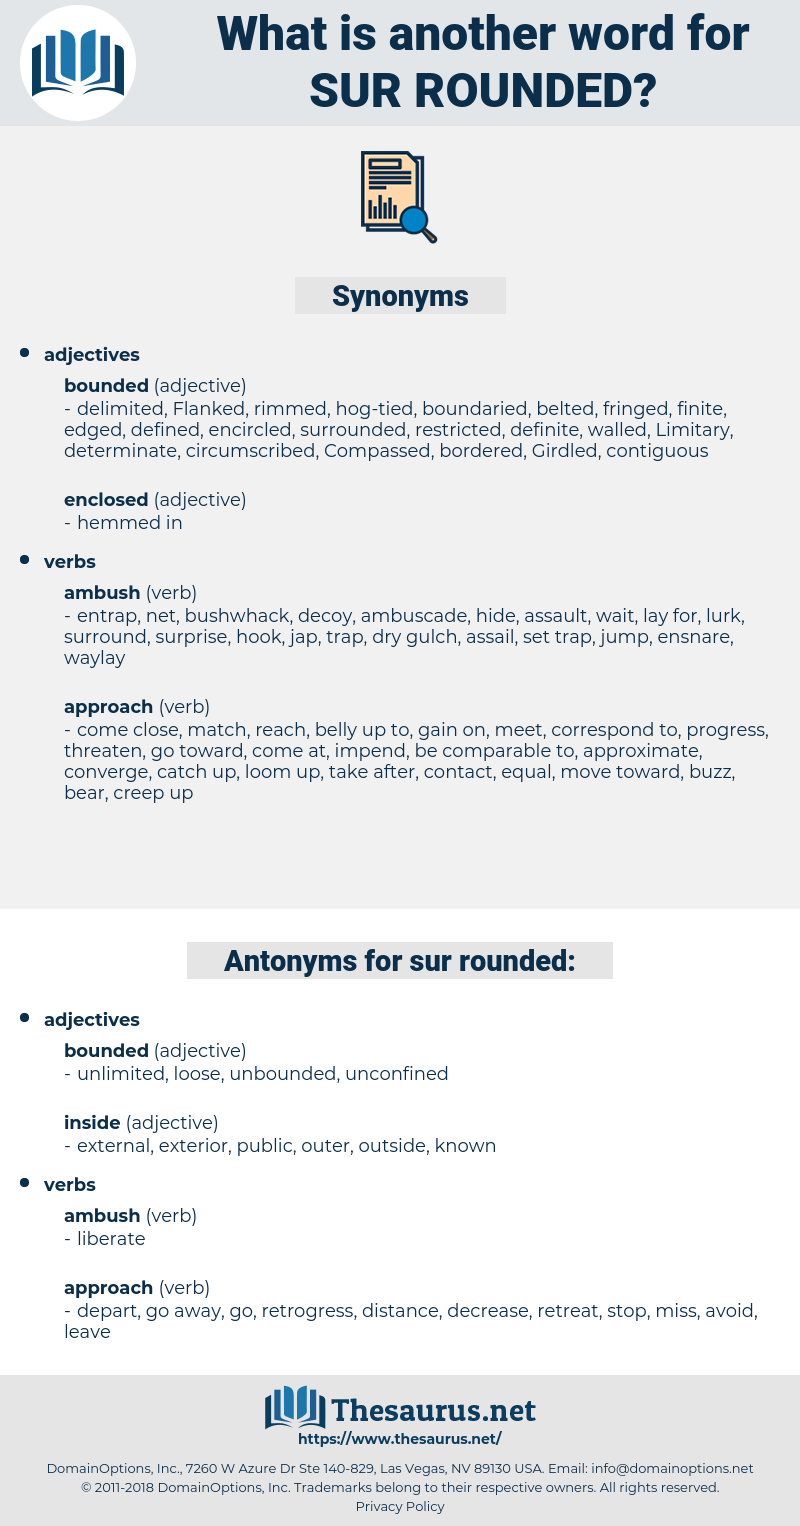 sur rounded, synonym sur rounded, another word for sur rounded, words like sur rounded, thesaurus sur rounded